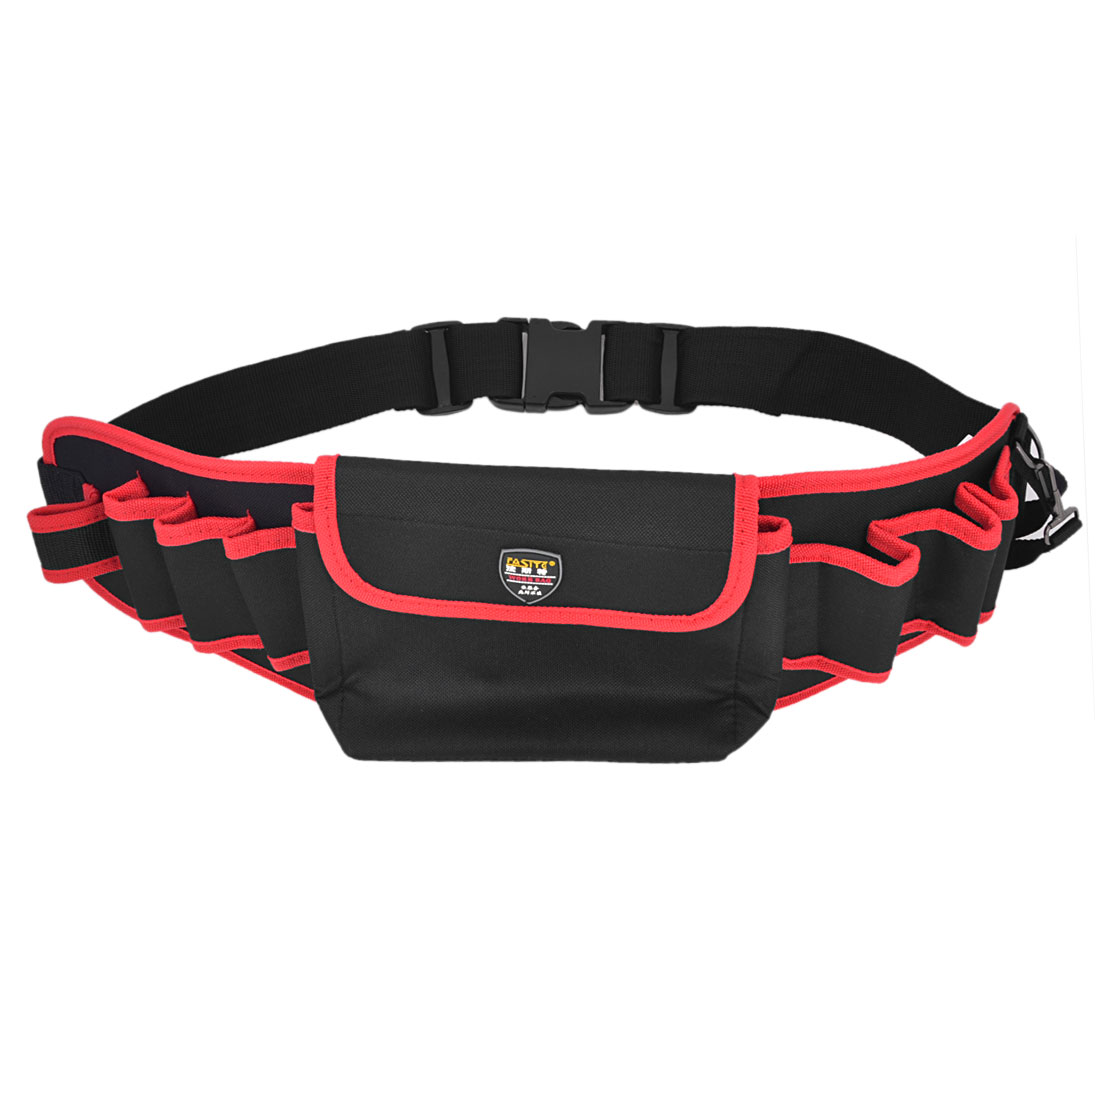 Black Red Canvas Pliers Scissors Orgnizer Tool Holder Waist Bag